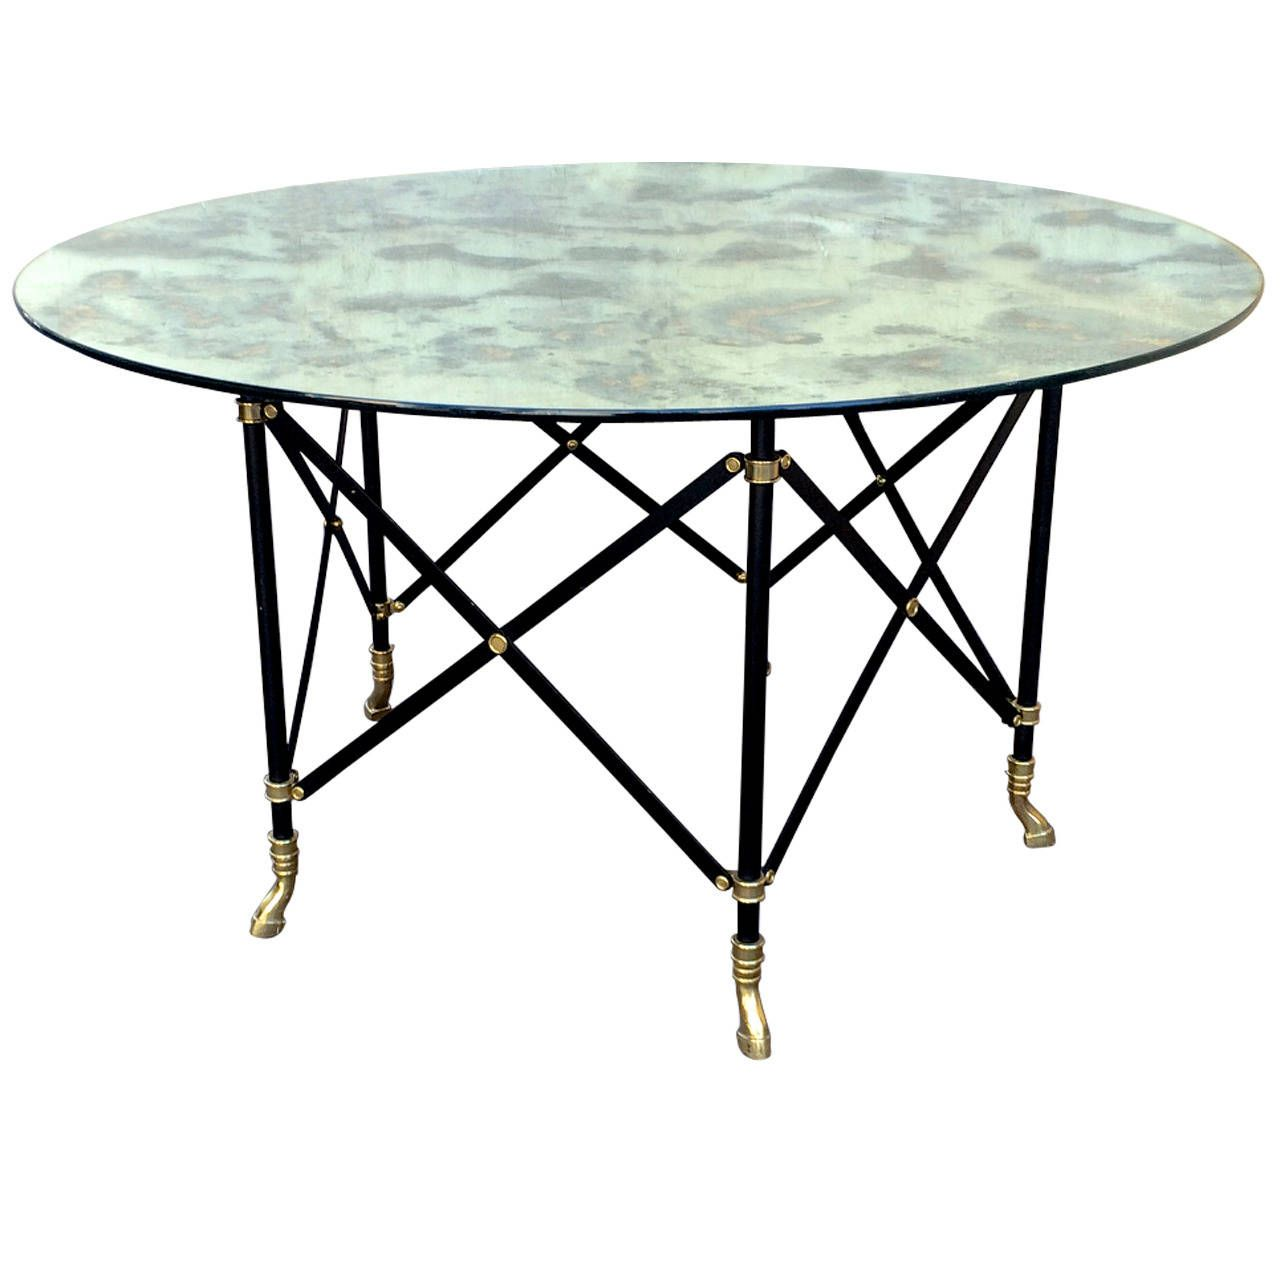 Maison Jansen Round Dinning Table With A Thick Eglomized Mirror Alluring Round Dining Room Table For Sale 2018